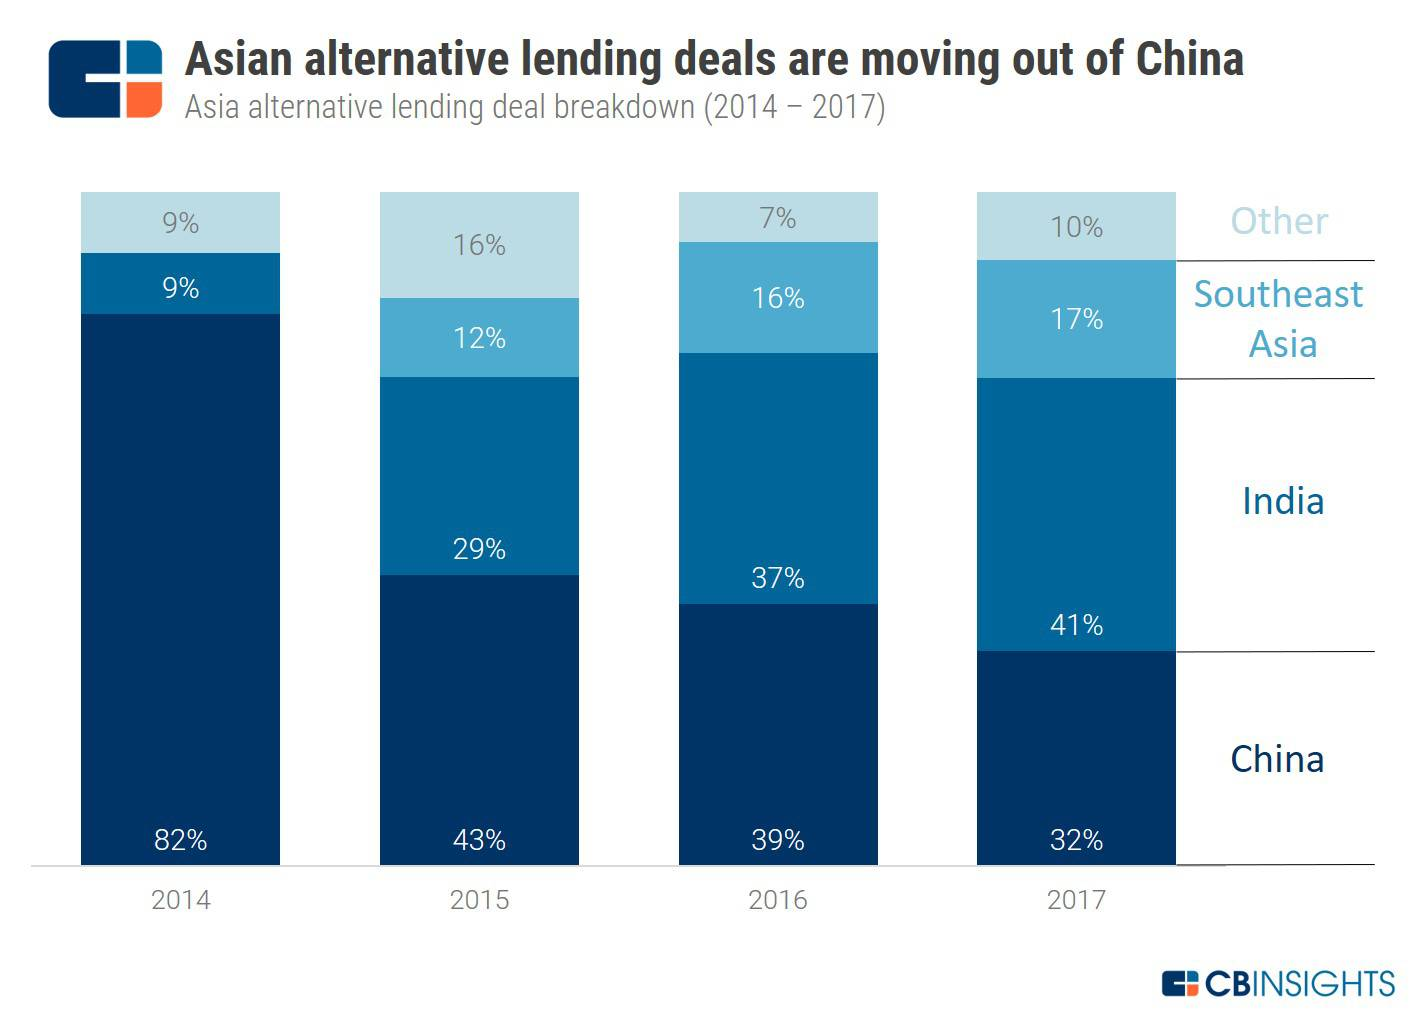 Why Alternative Lending Deals Are Moving Out Of China And Into India & Southeast Asia